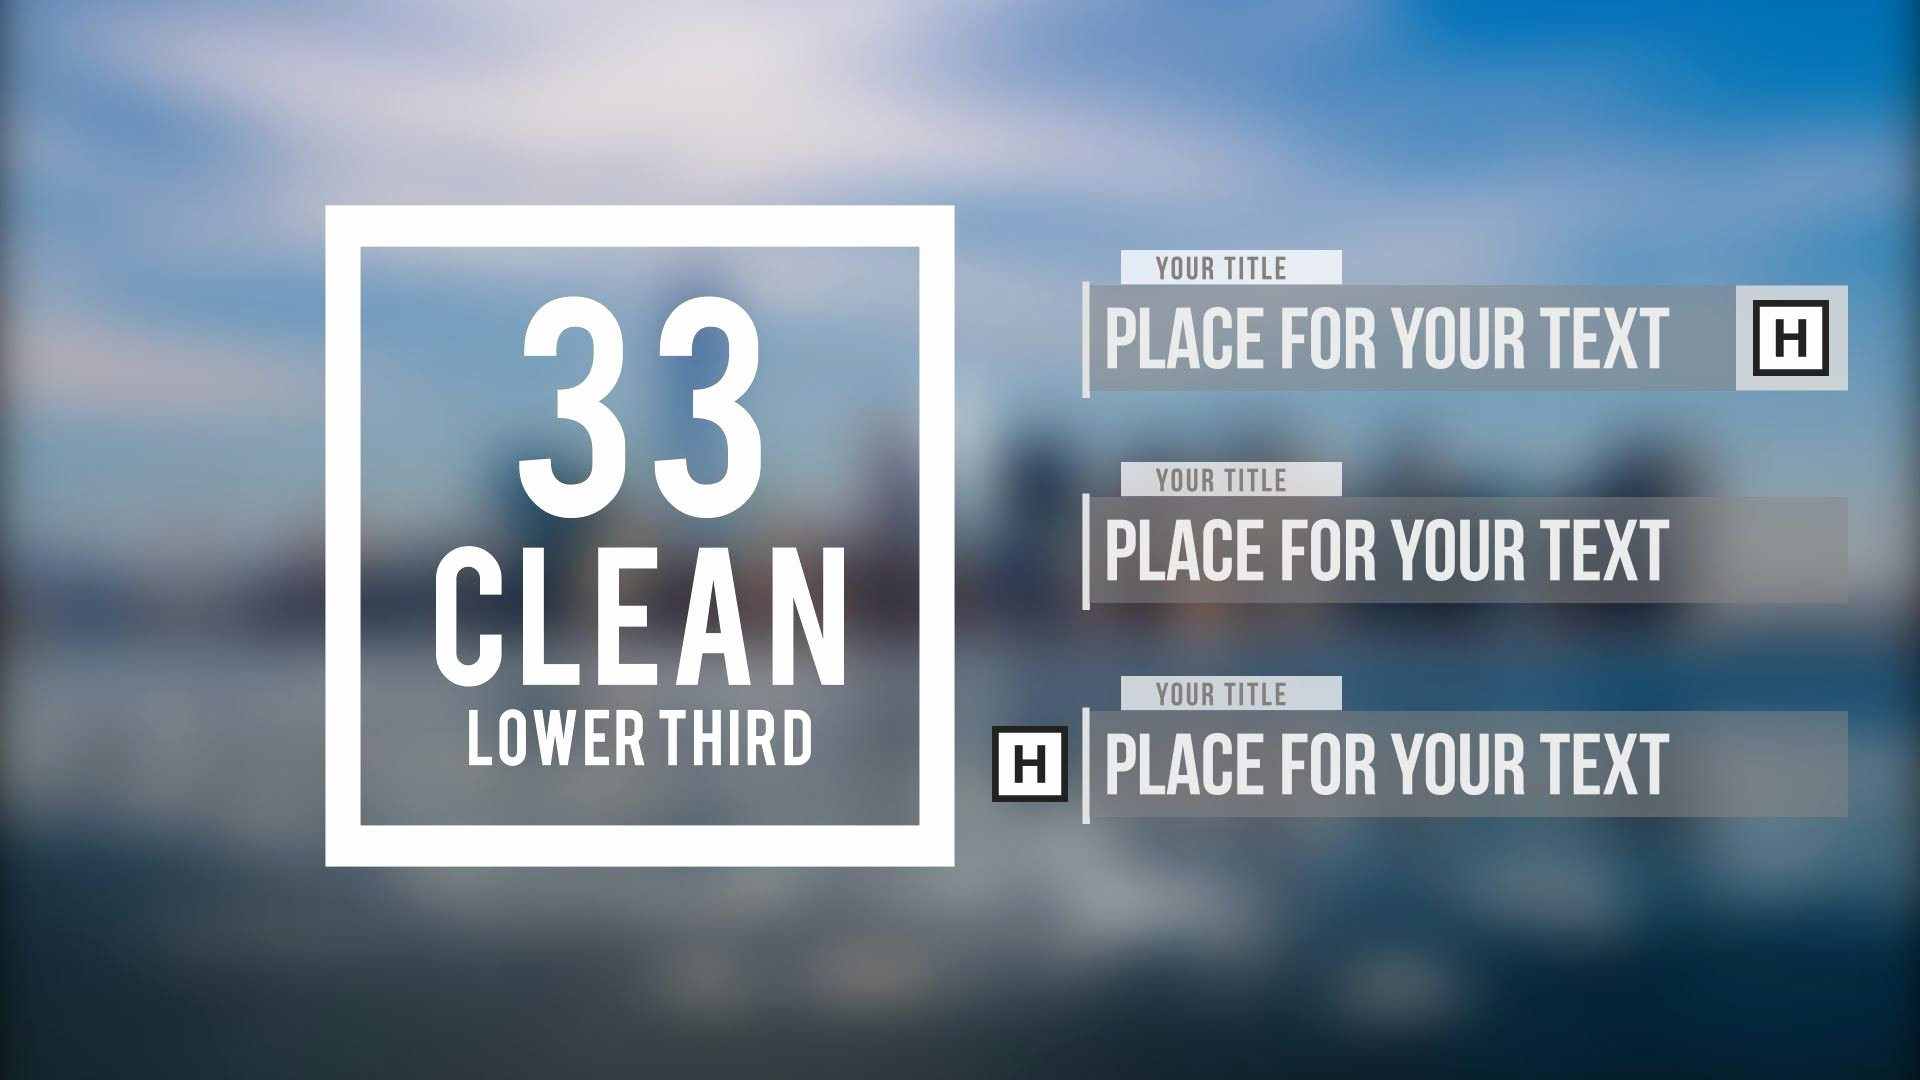 Adobe after Effects 33 Clean Lower Third Free Template